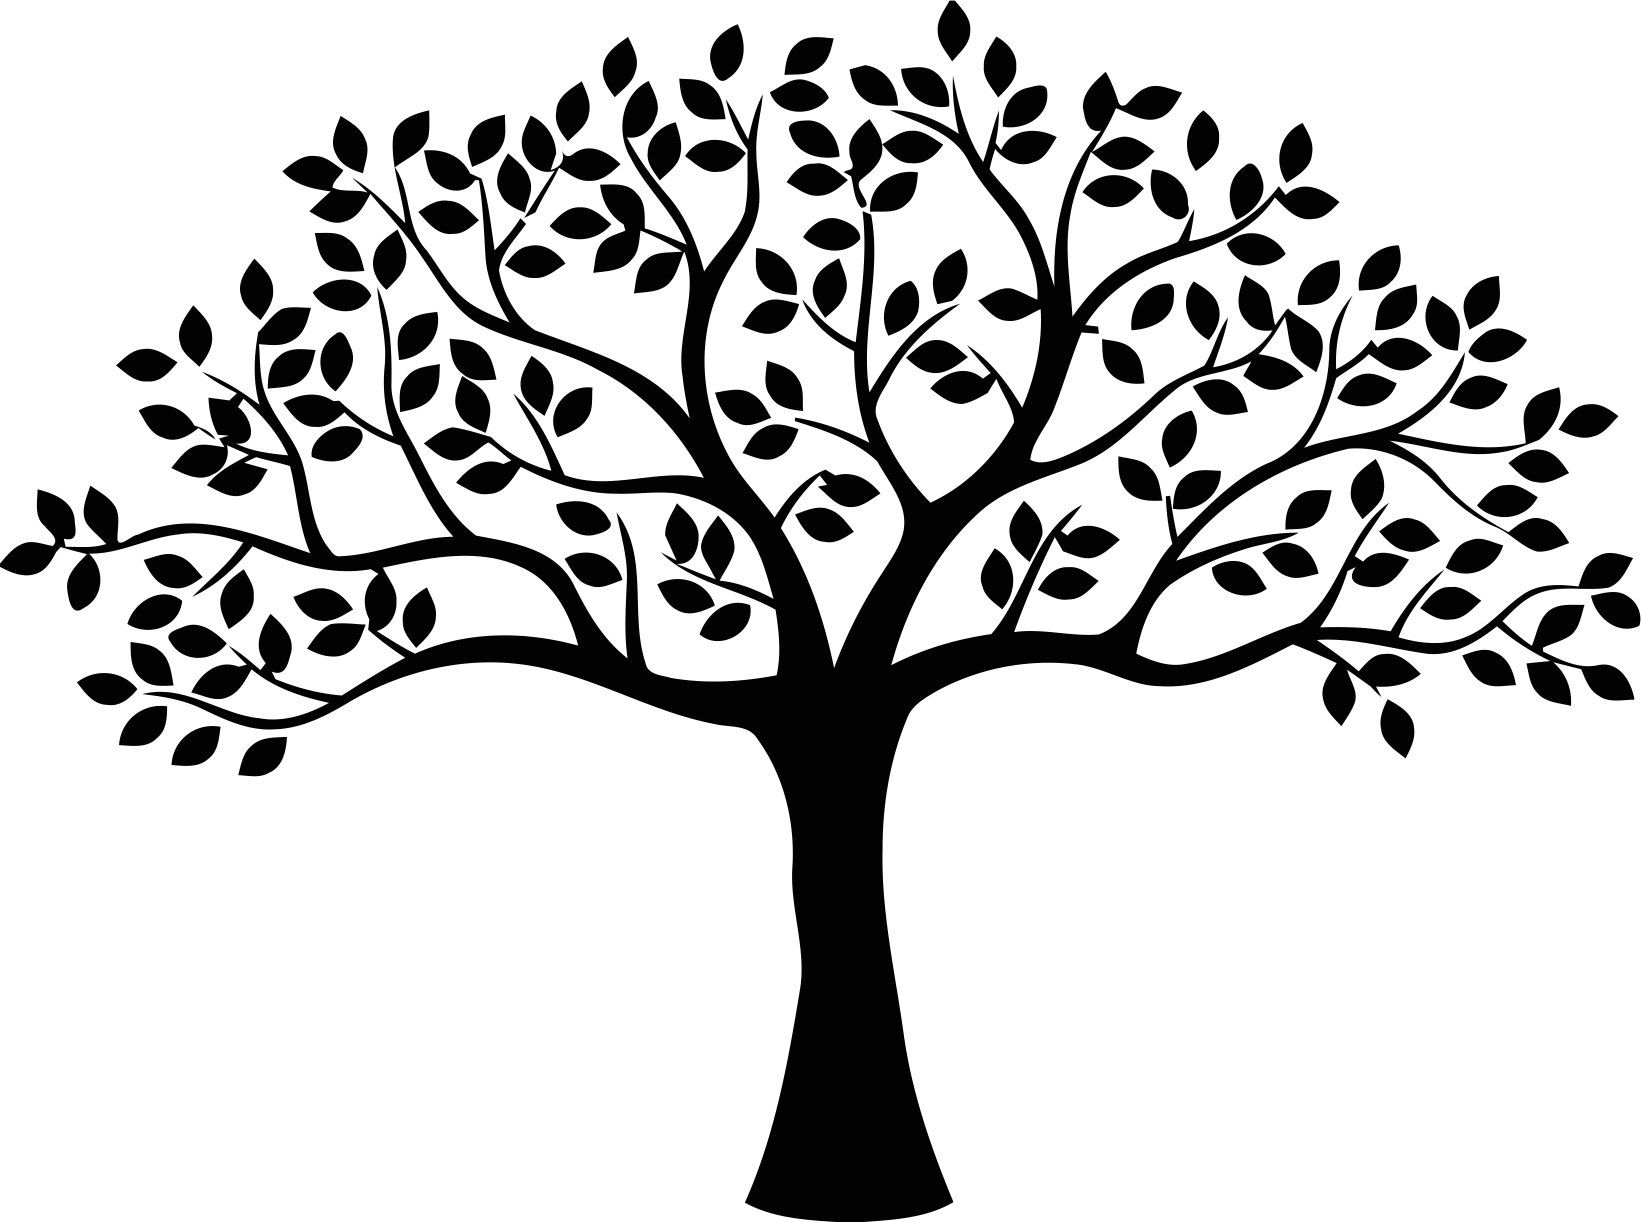 Decor Tree Free Vector cdr Download Stencil de árvore